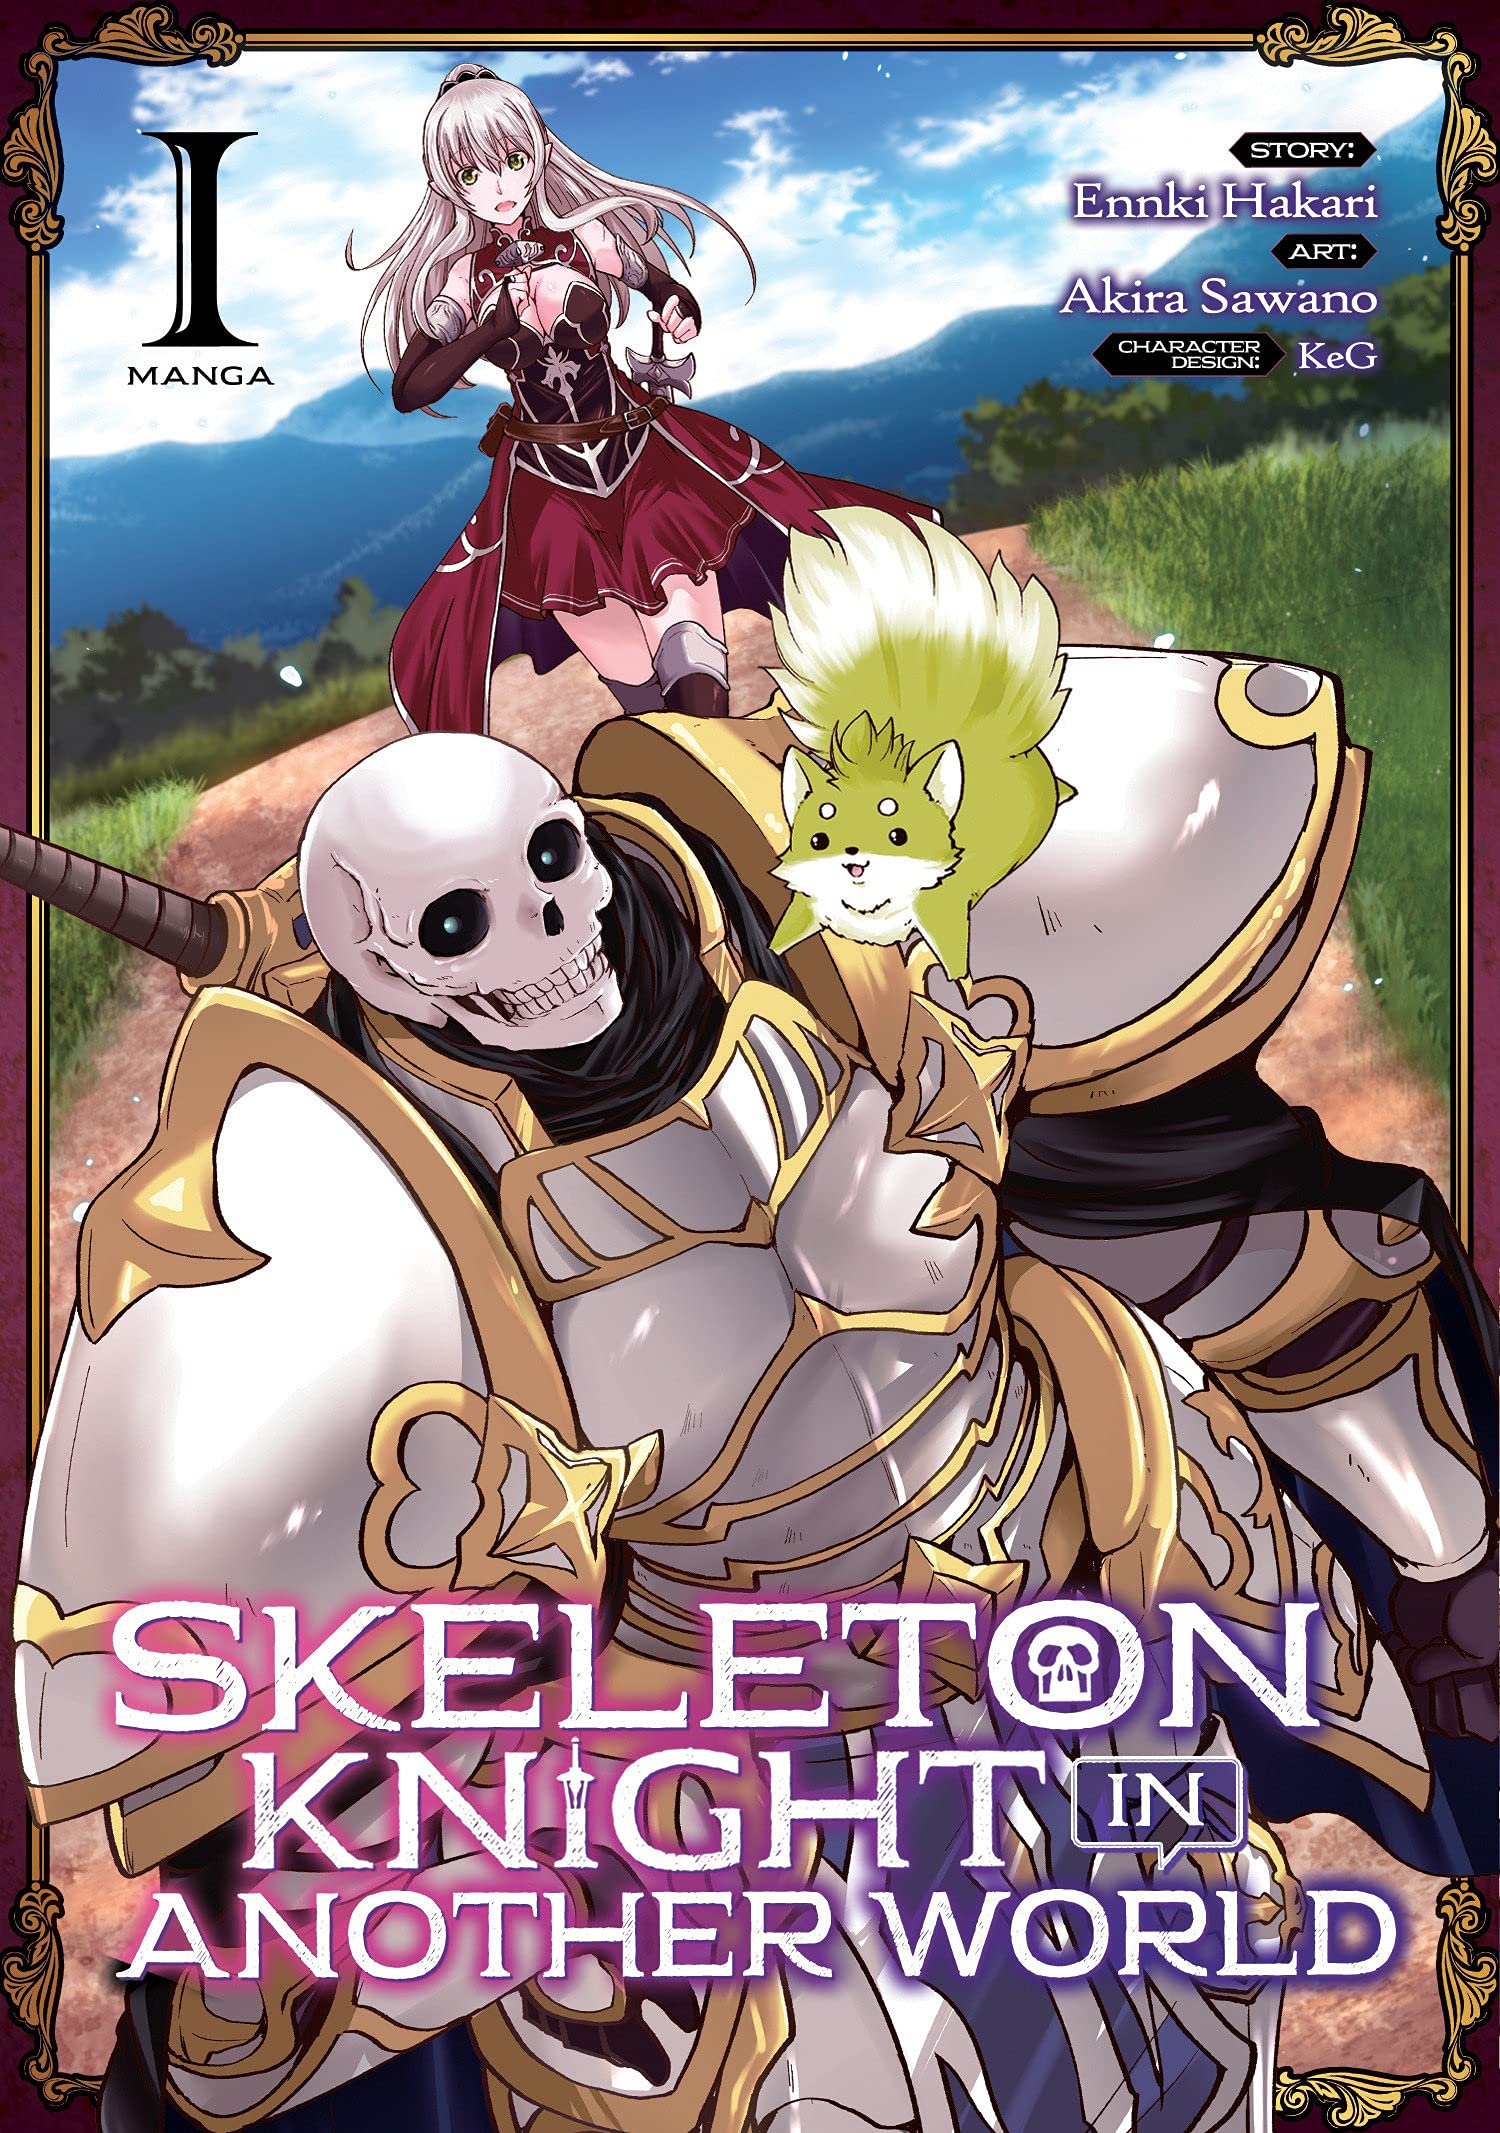 Skeleton Knight in Another World Meian édition Tome 1 Tome 2 Review Avis Critique M J Stark